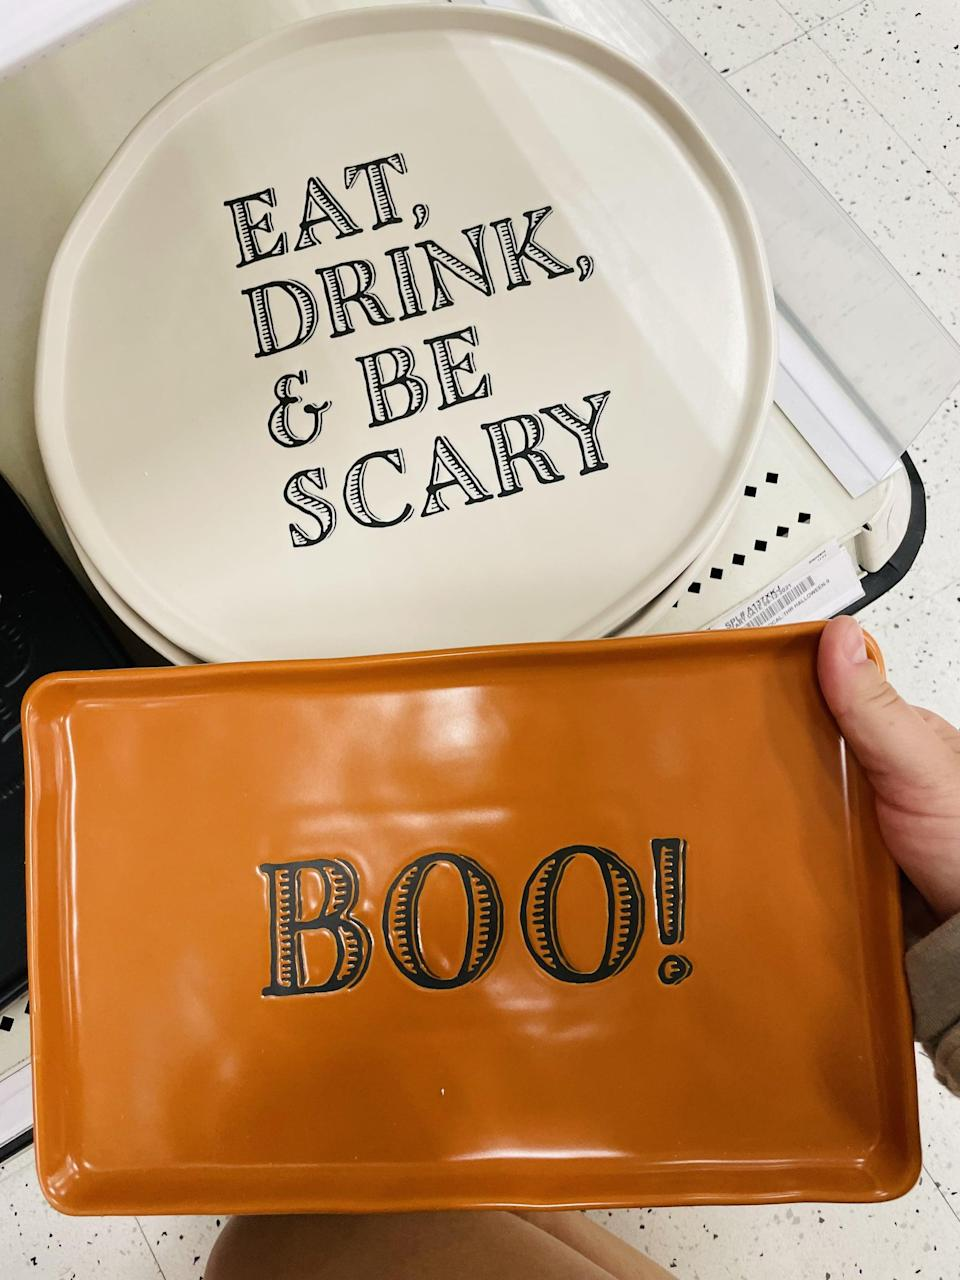 """<p>Hosting a <a class=""""link rapid-noclick-resp"""" href=""""https://www.popsugar.com/Halloween"""" rel=""""nofollow noopener"""" target=""""_blank"""" data-ylk=""""slk:Halloween"""">Halloween</a> party? This <span>Threshold Eat, Drink and Be Scary Serving Platter</span> ($15) and <span>Threshold Boo Serving Platter</span> ($15) are both stylish and seasonal. I think these will sell out fast!</p>"""